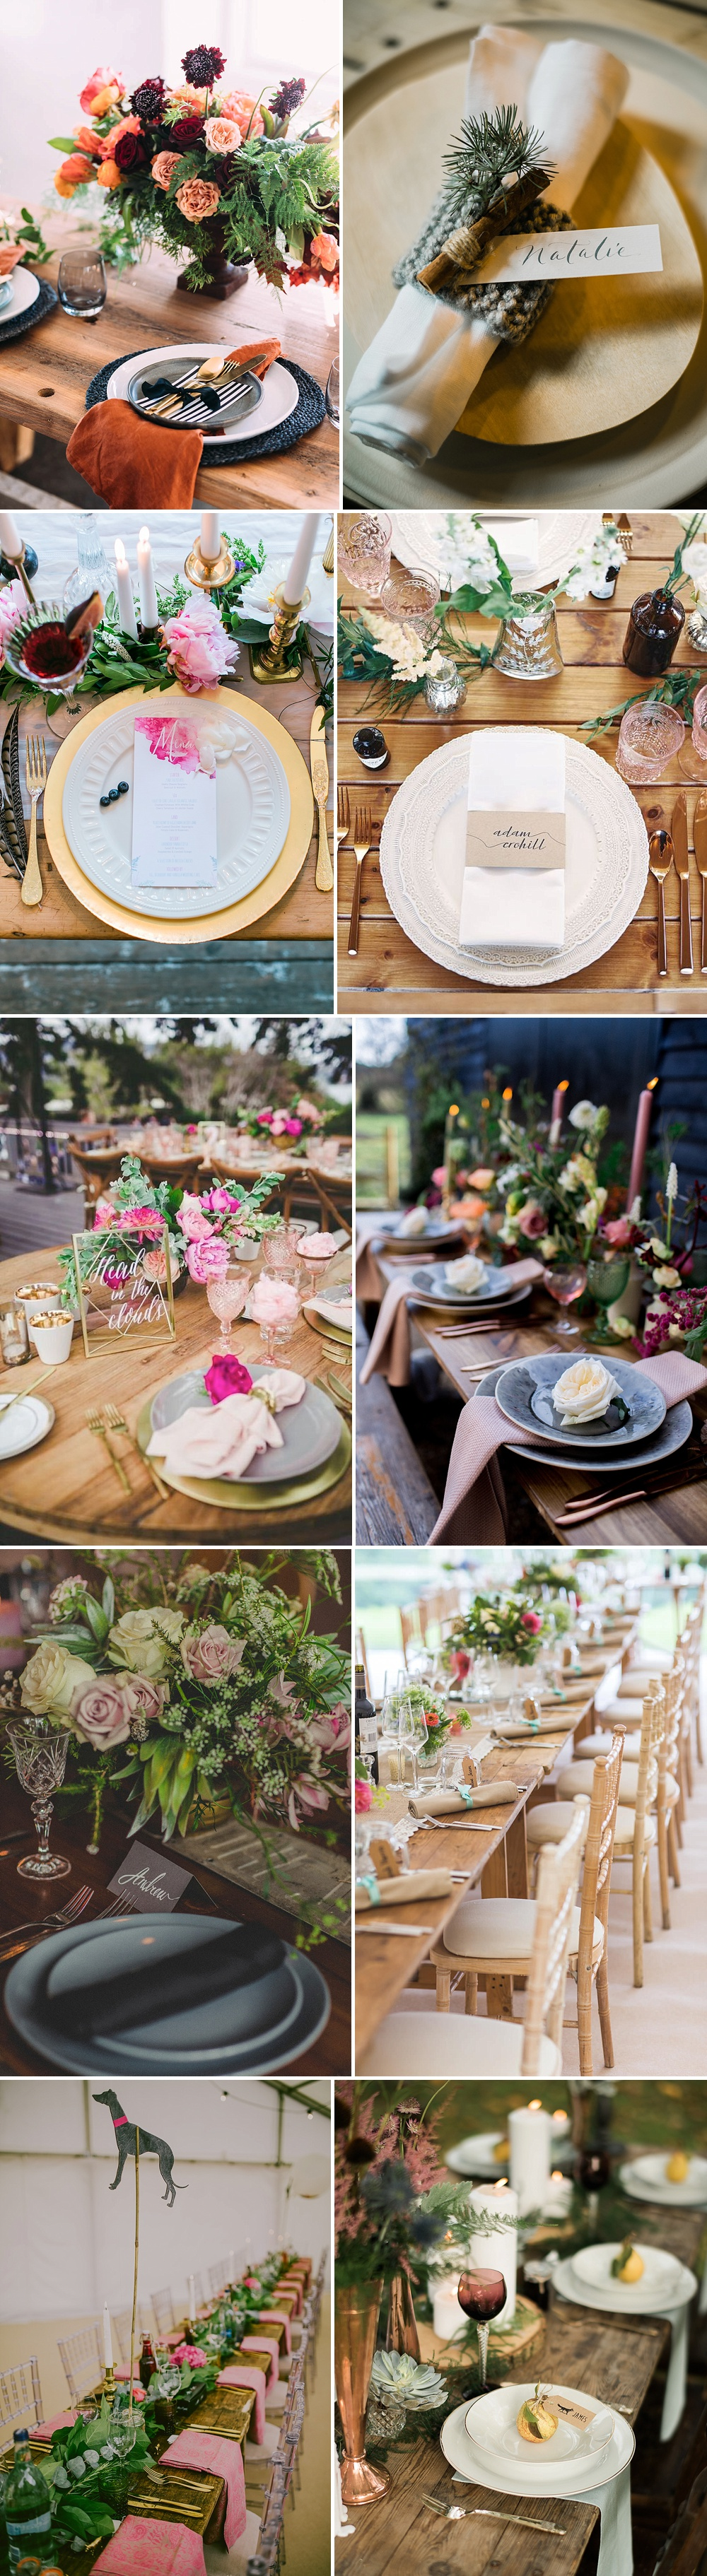 Rustic Place Settings For Weddings With A Bright Colour Palette